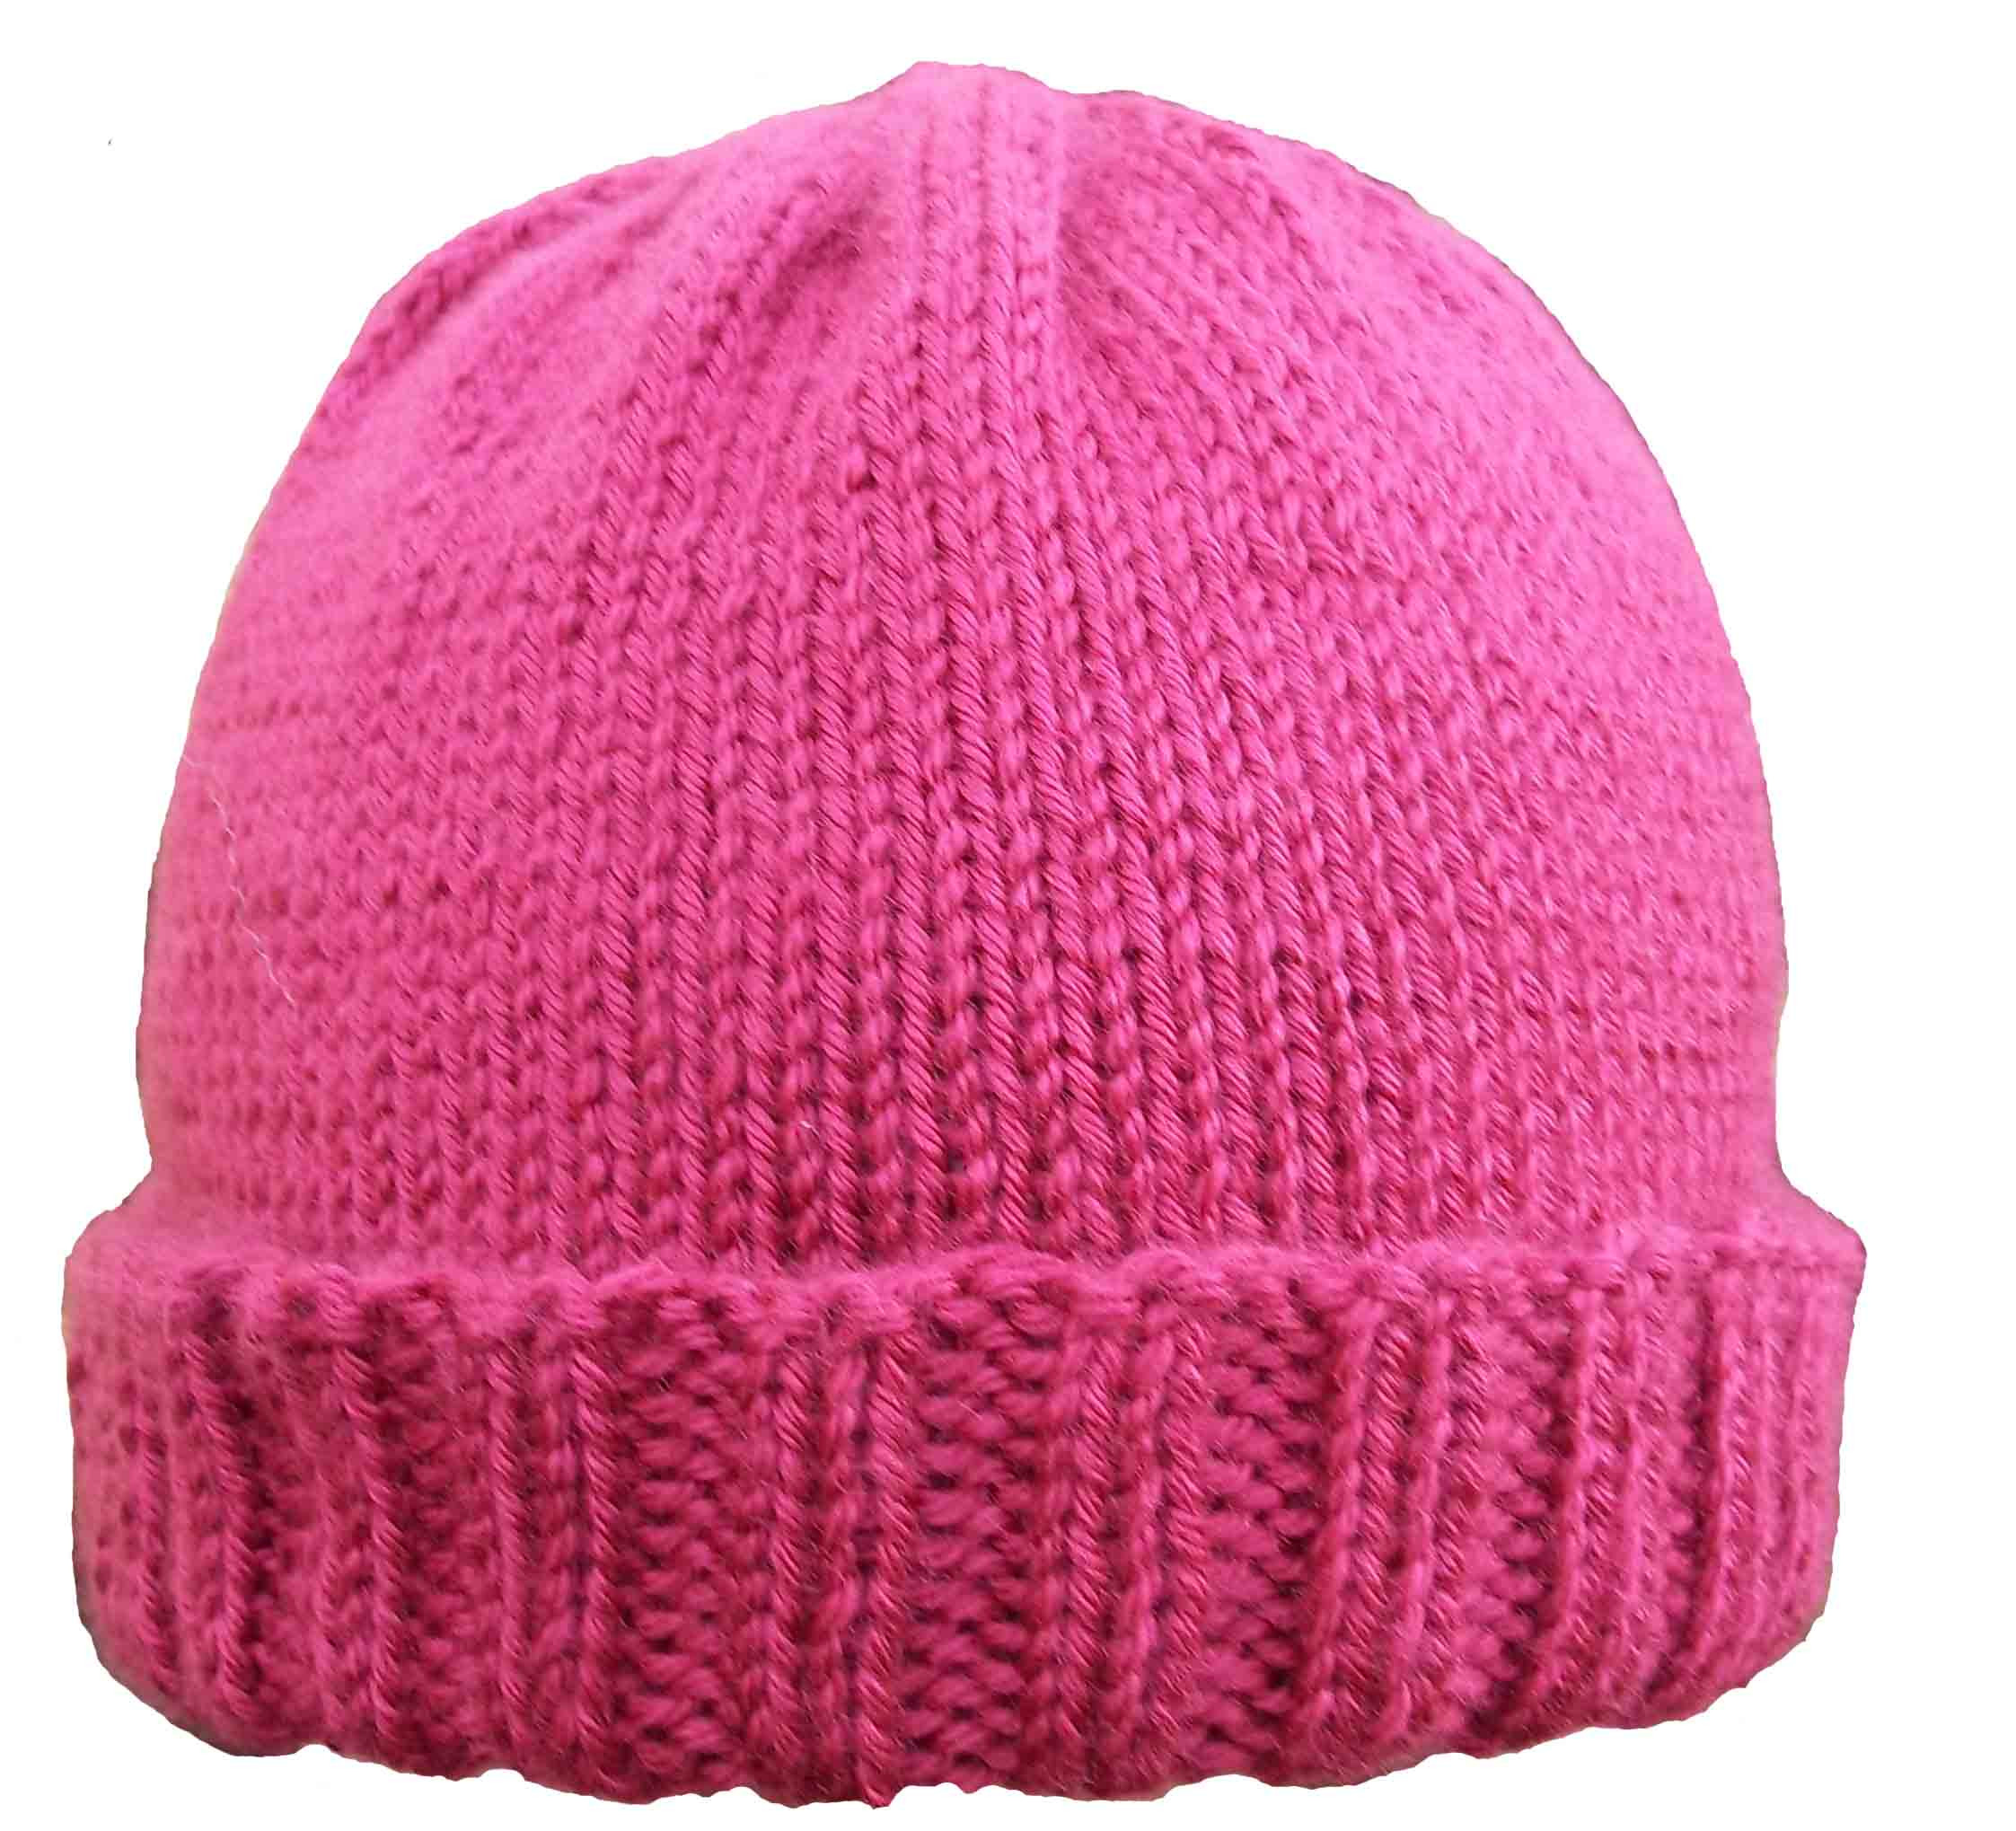 EASY KNITTED HAT PATTERNS FREE PATTERNS